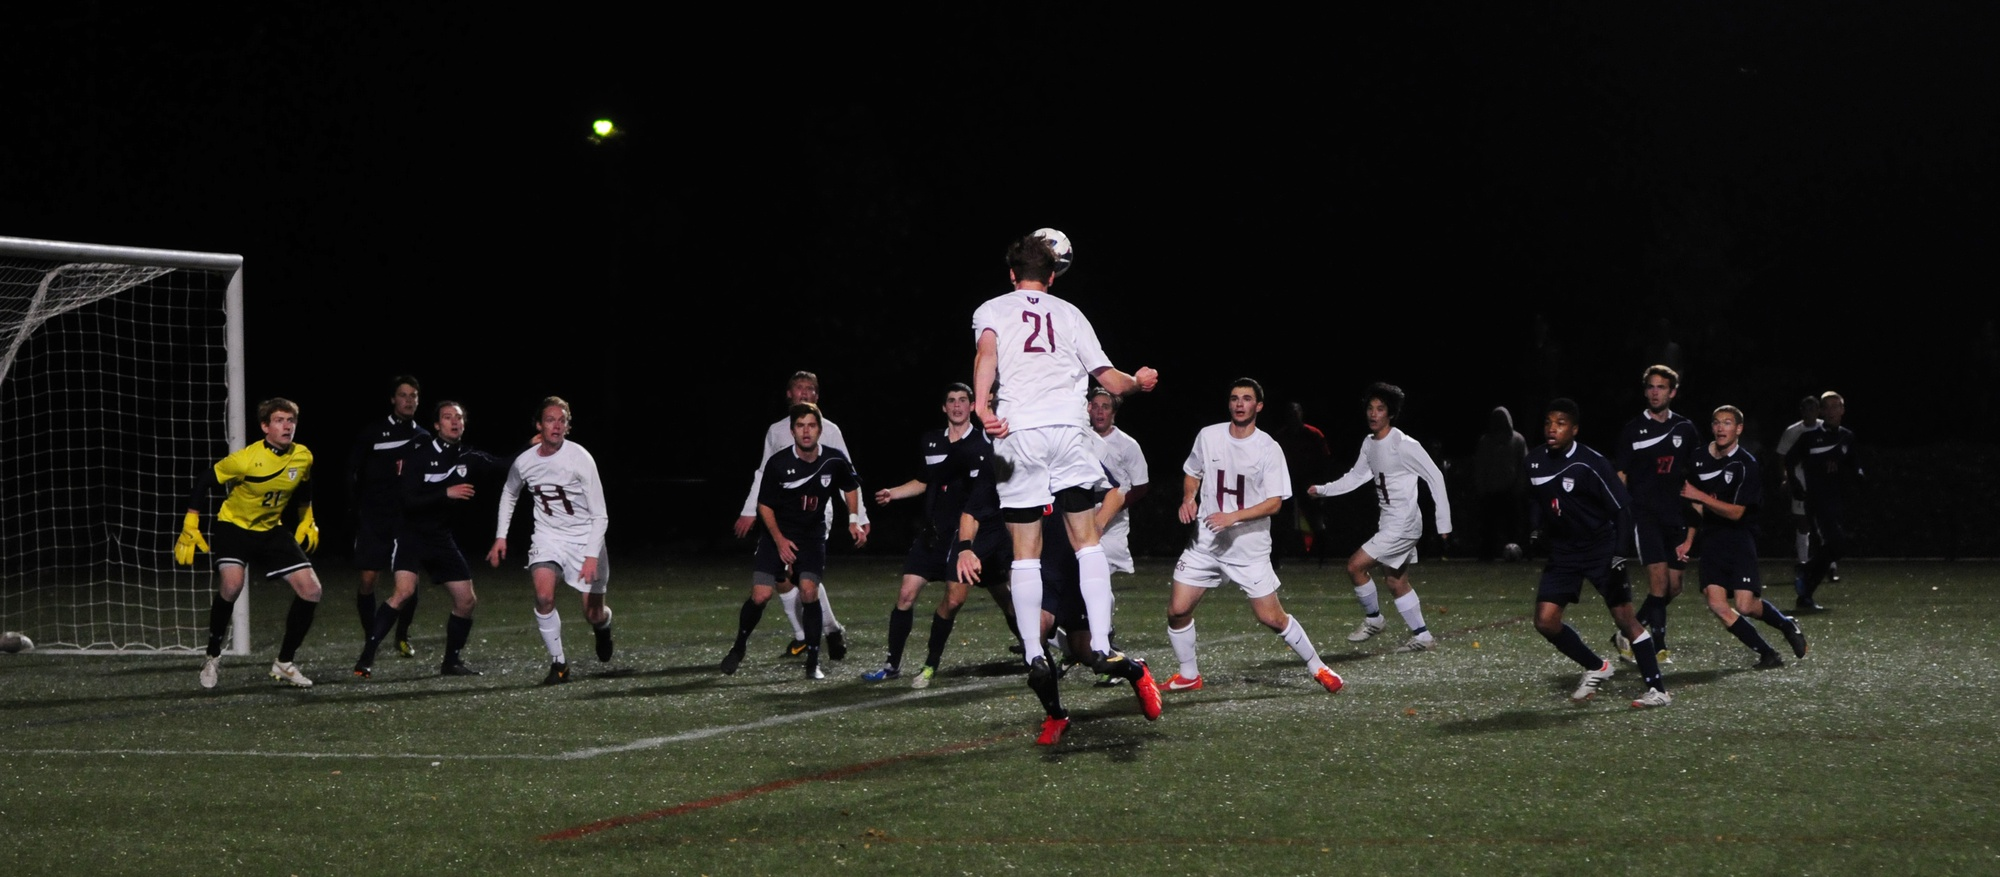 Senior Kevin Harrington takes a header after a corner kick by classmate Ross Friedman. Two early goals allowed Penn to take the win over Harvard, 2-0.